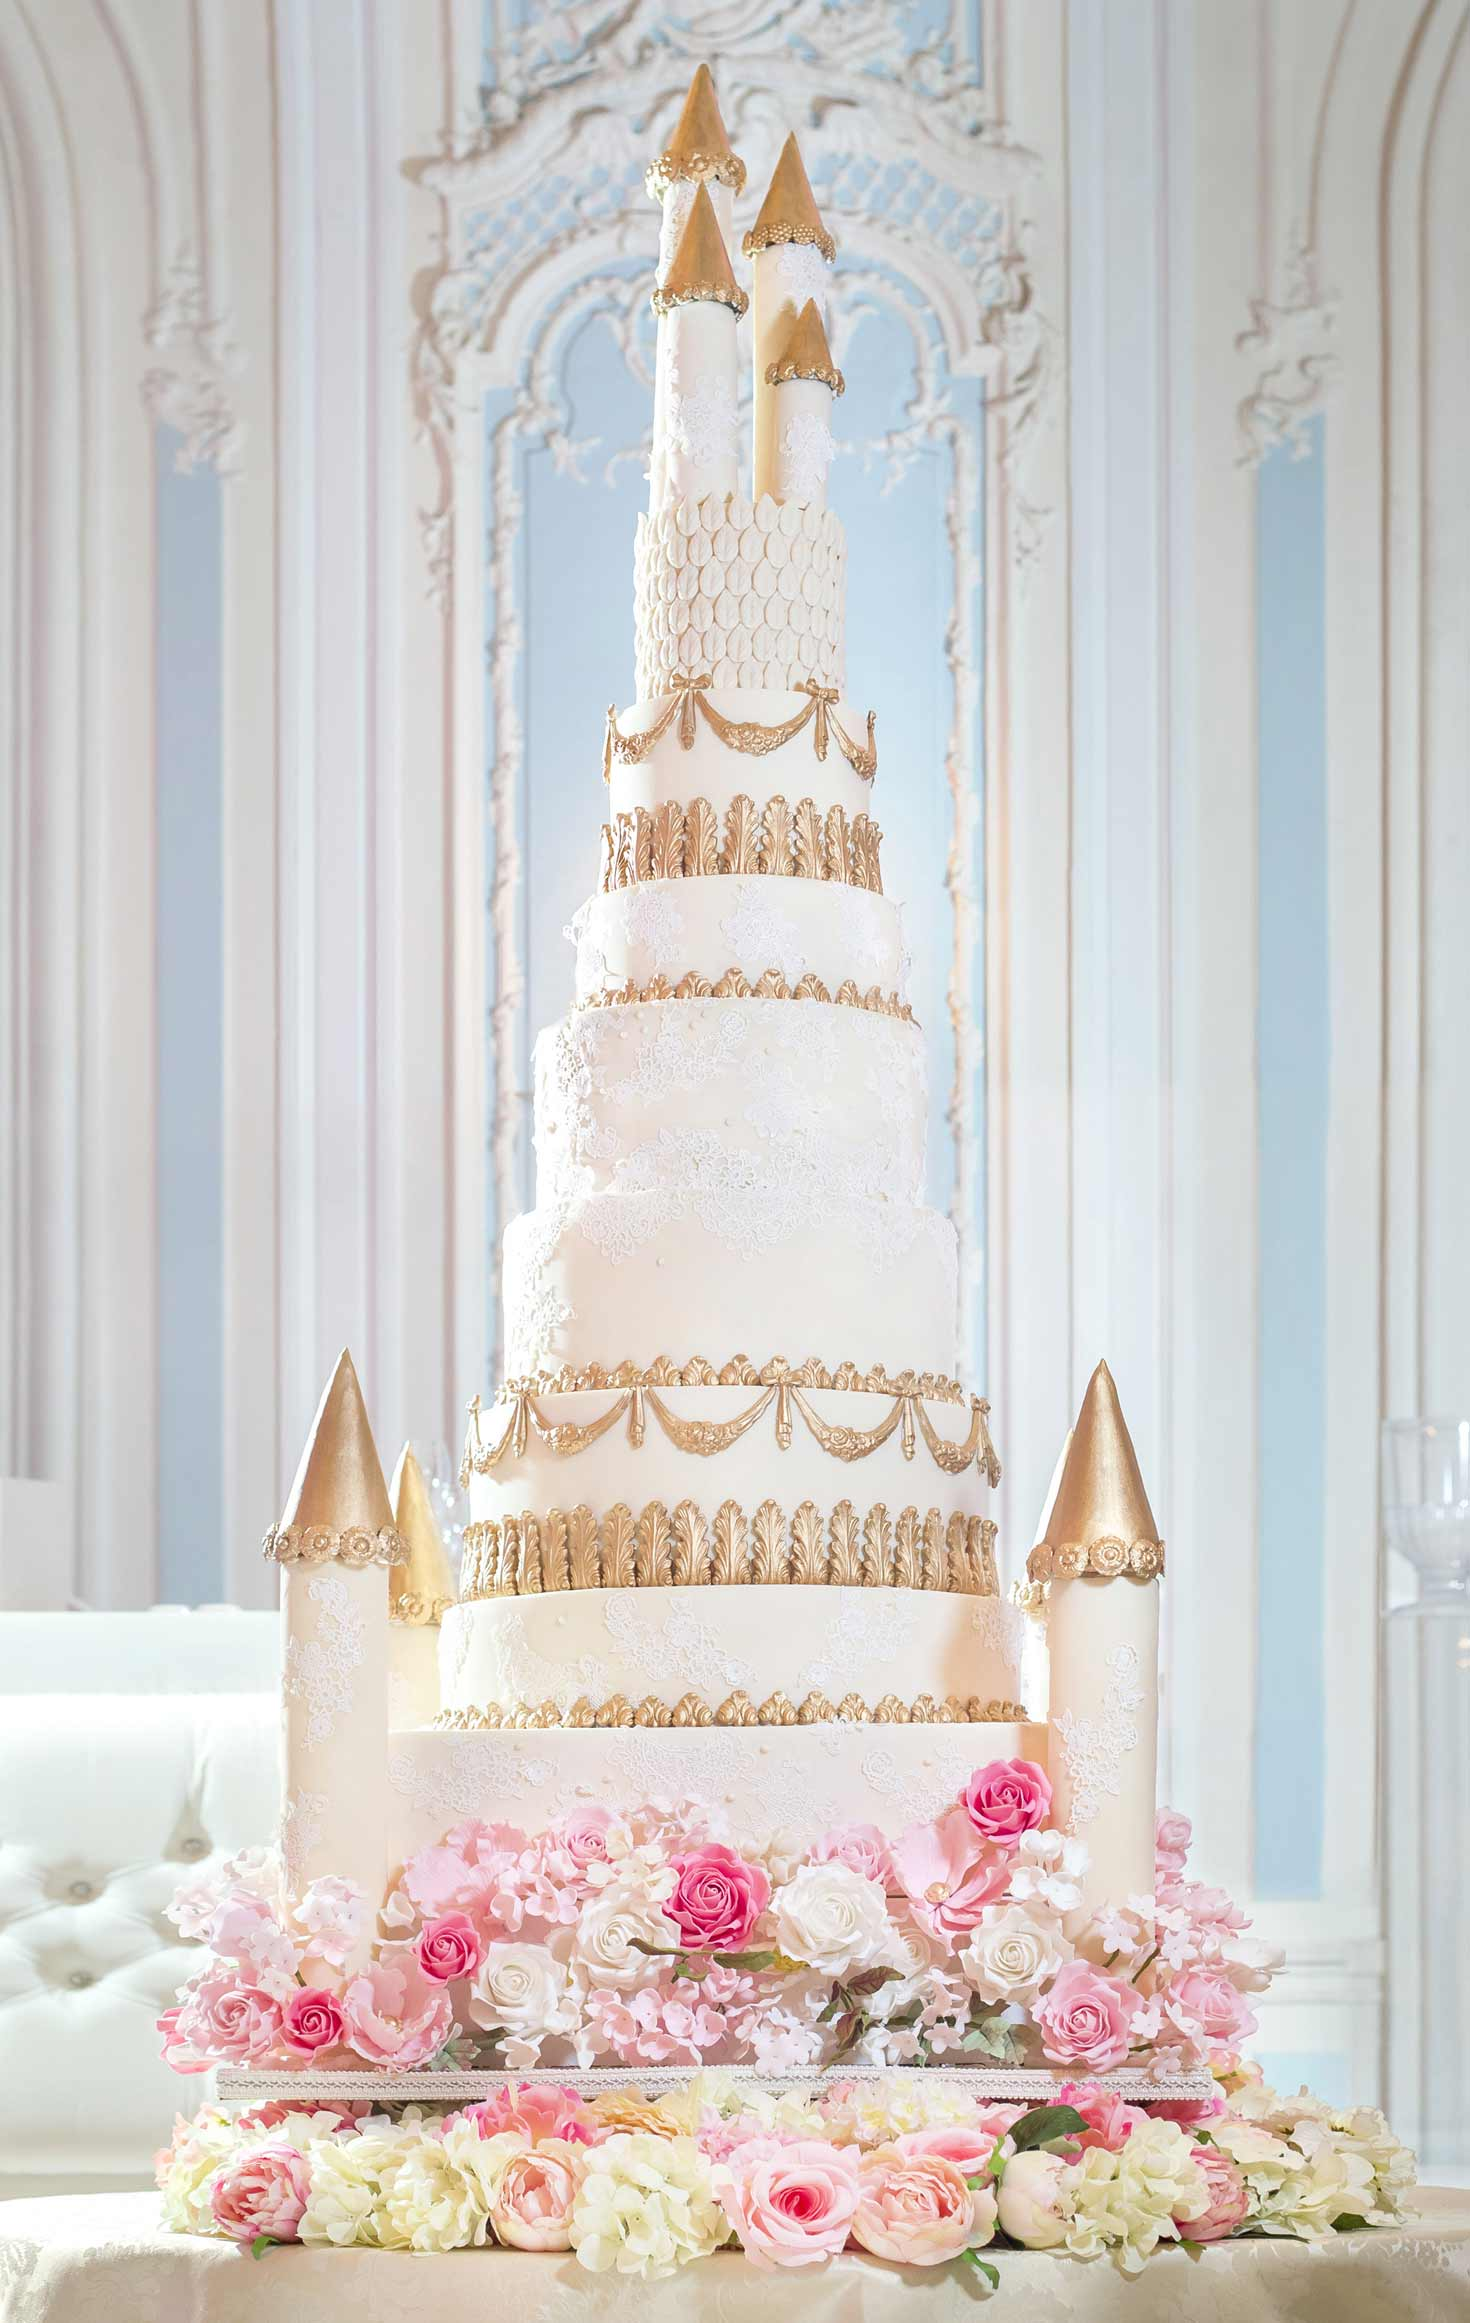 8 Foot Fairytale Castle Cake at the Savoy Elizabeth s Cake Emporium